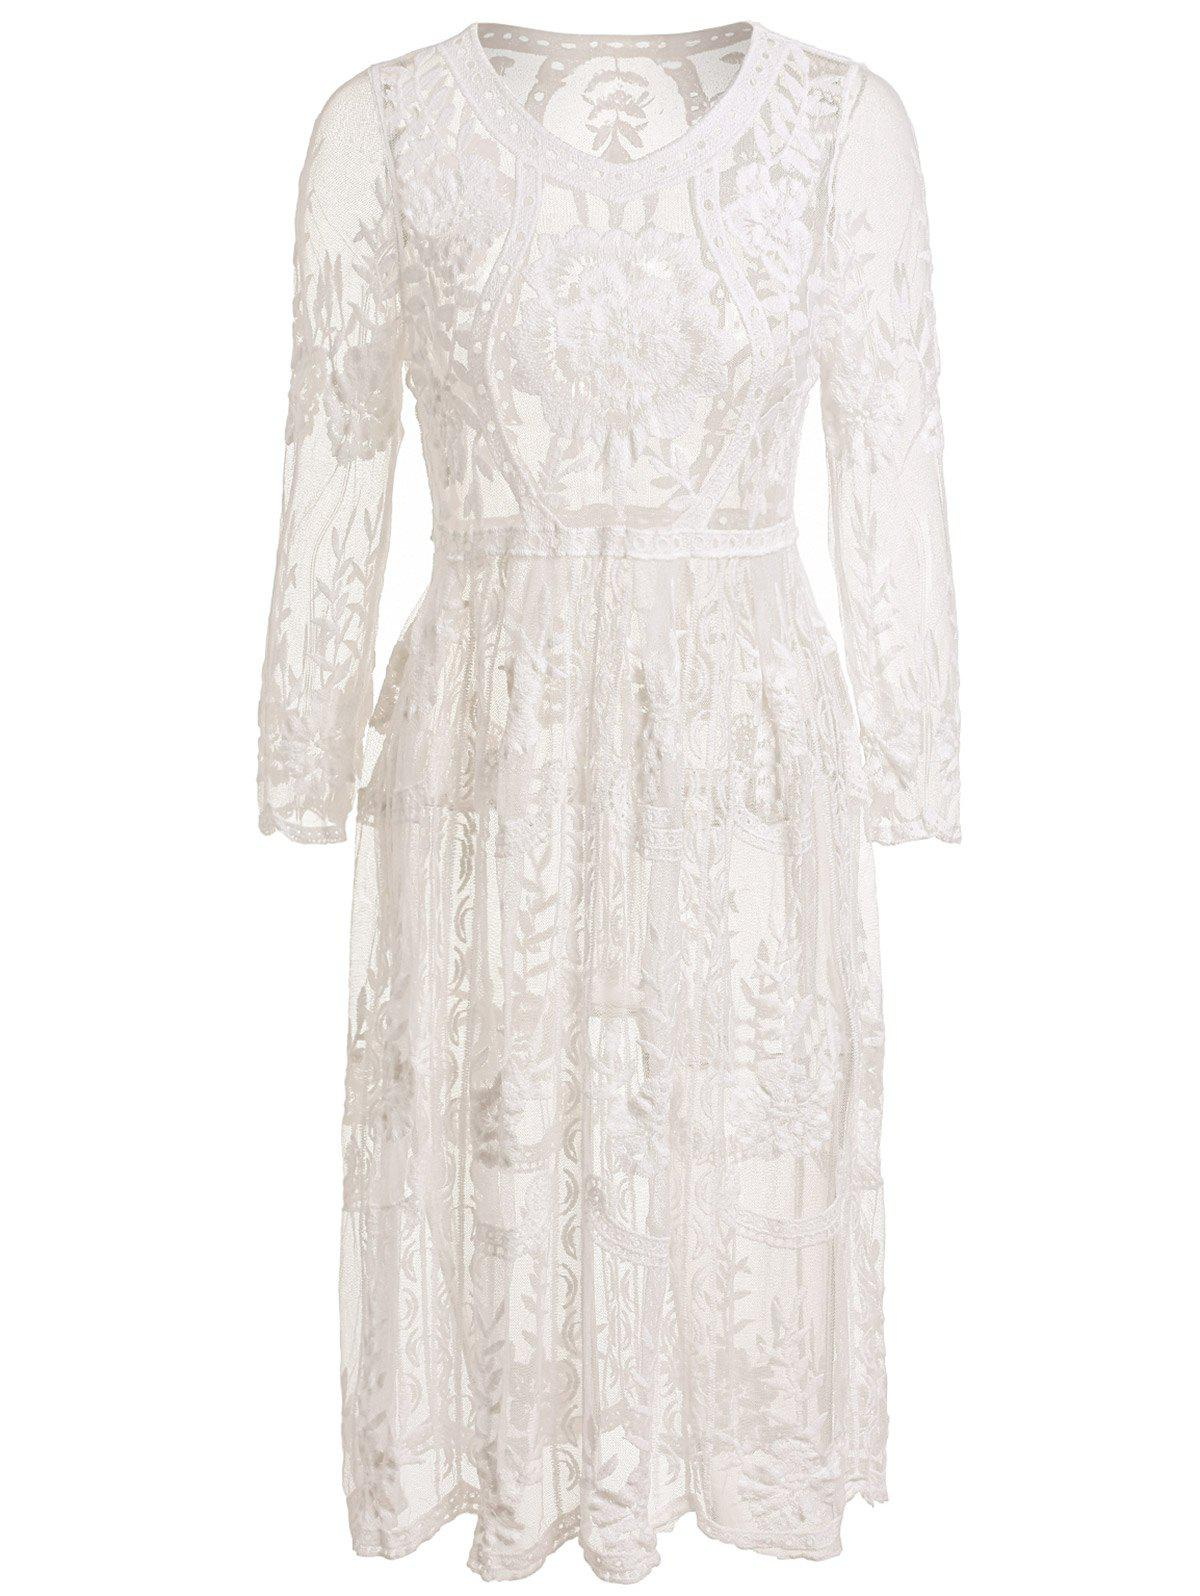 Chic V Neck Long Sleeves Flower Pattern See-Through Women's Dress - WHITE ONE SIZE(FIT SIZE XS TO M)